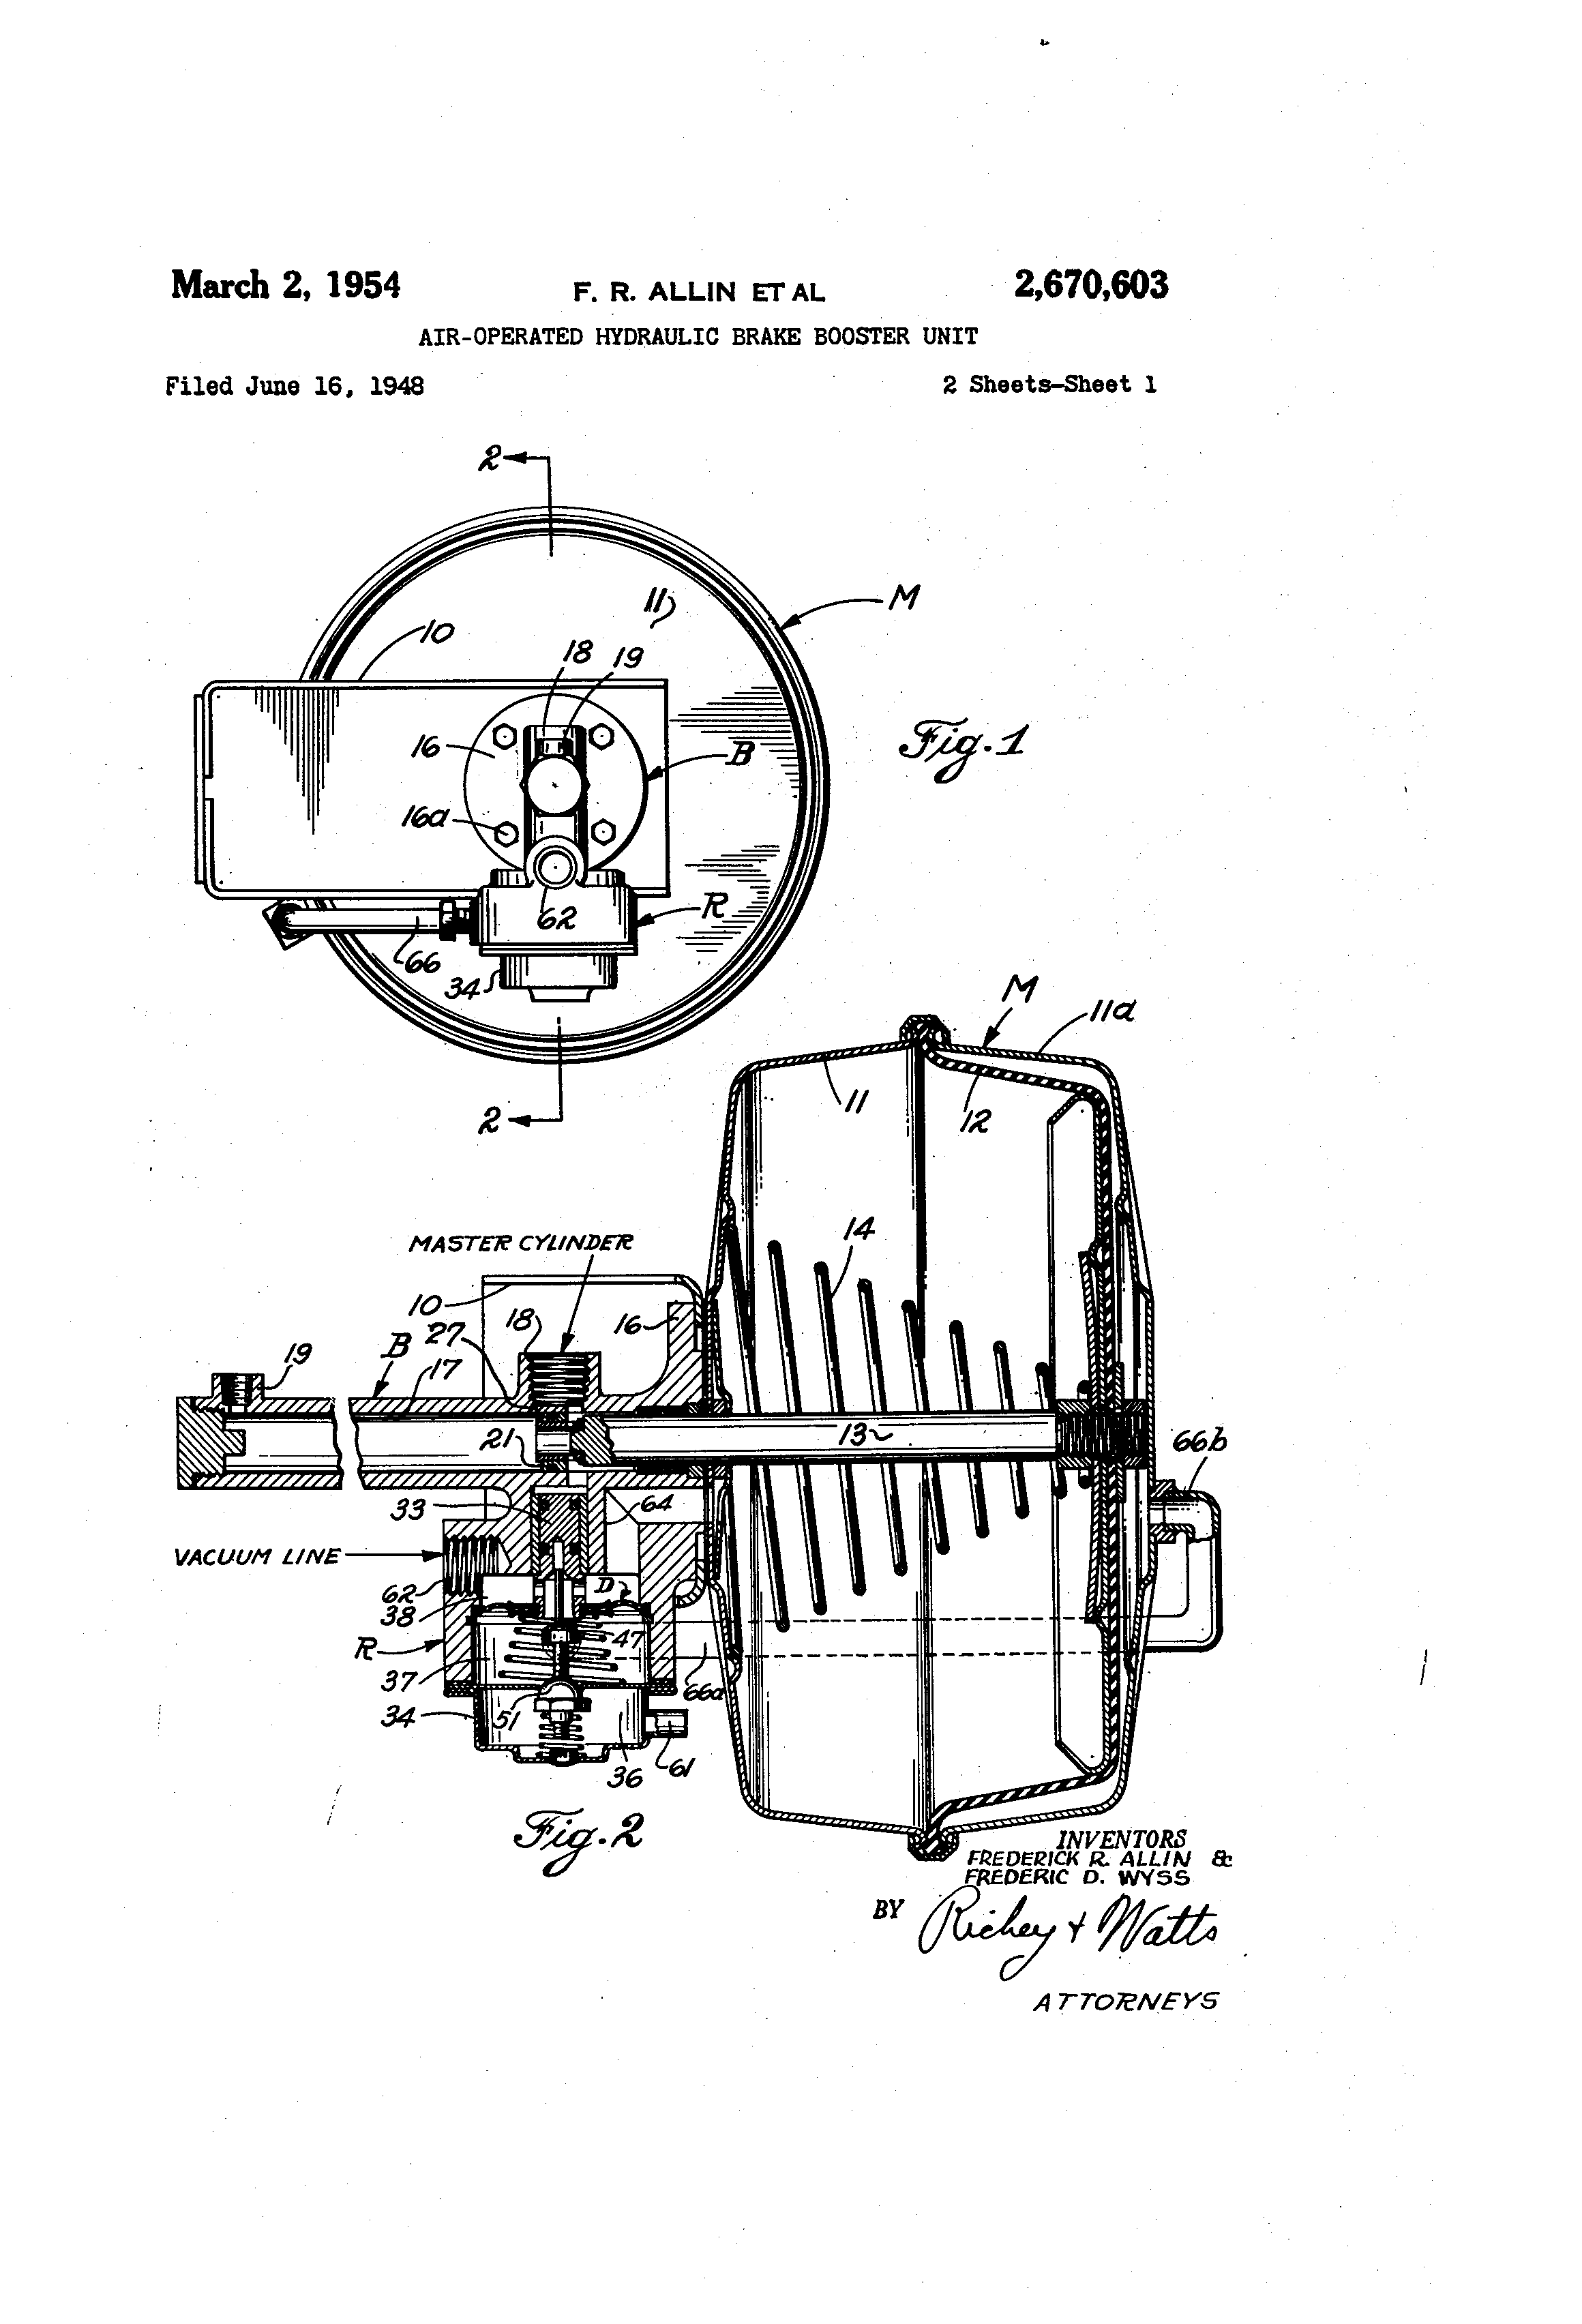 Patent US2670603 - Air-operated hydraulic brake booster unit